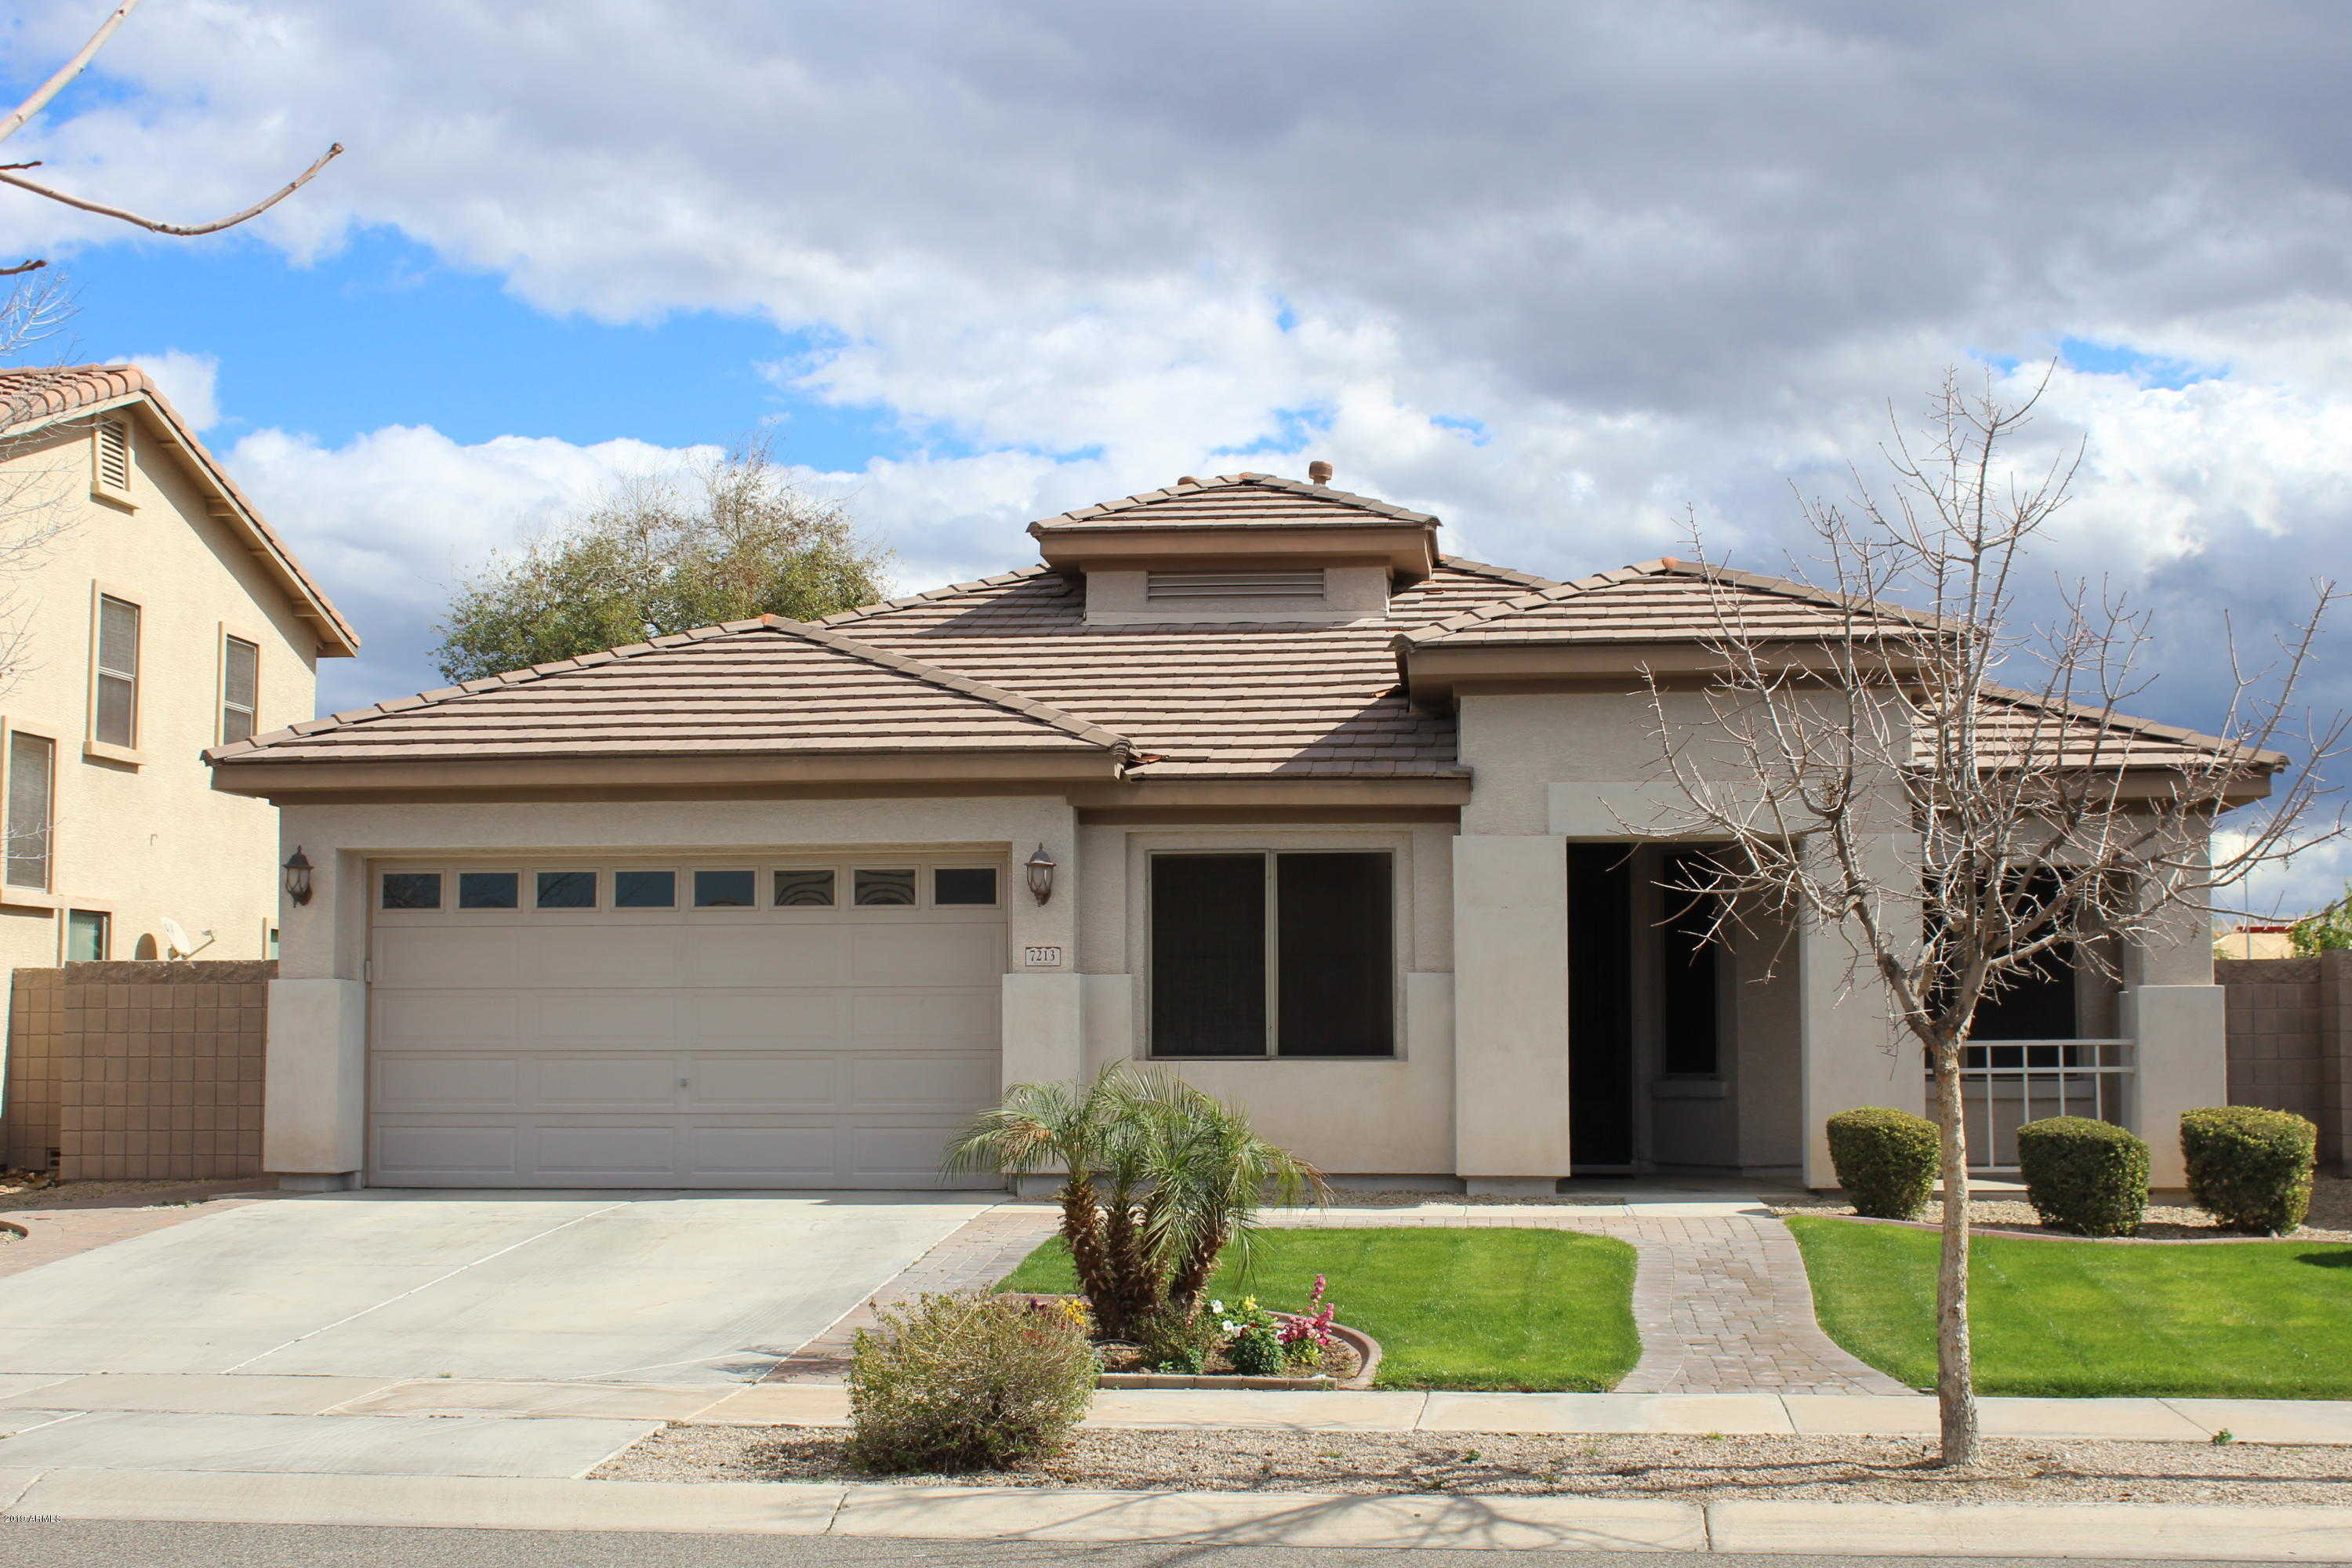 $305,000 - 4Br/2Ba - Home for Sale in Rovey Farm Estates South, Glendale